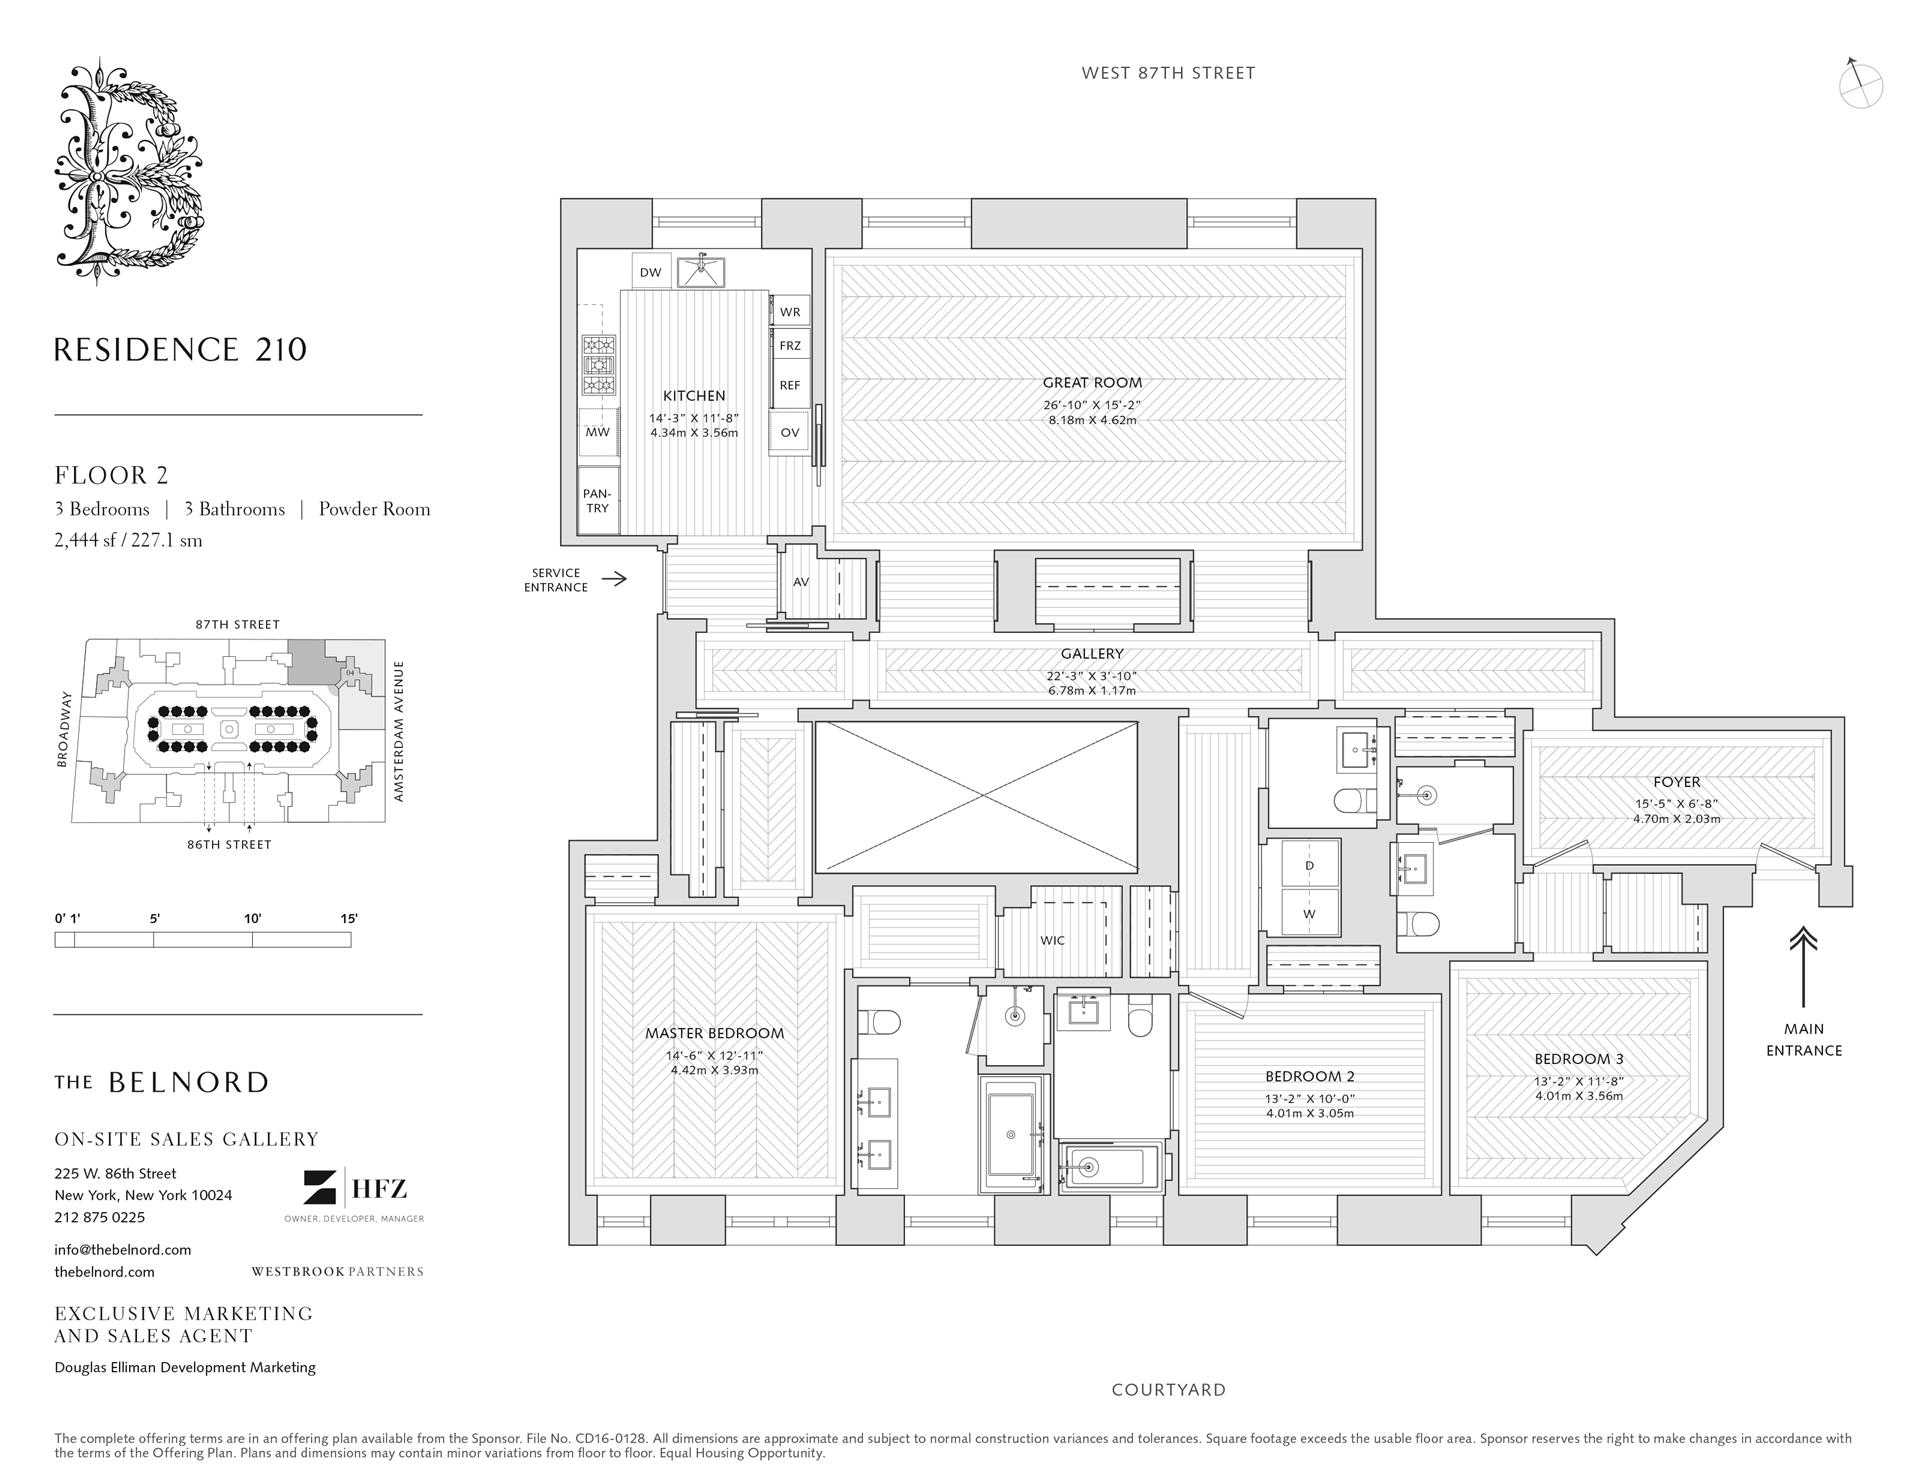 Floor plan of The Belnord, 225 West 86th St, 210 - Upper West Side, New York